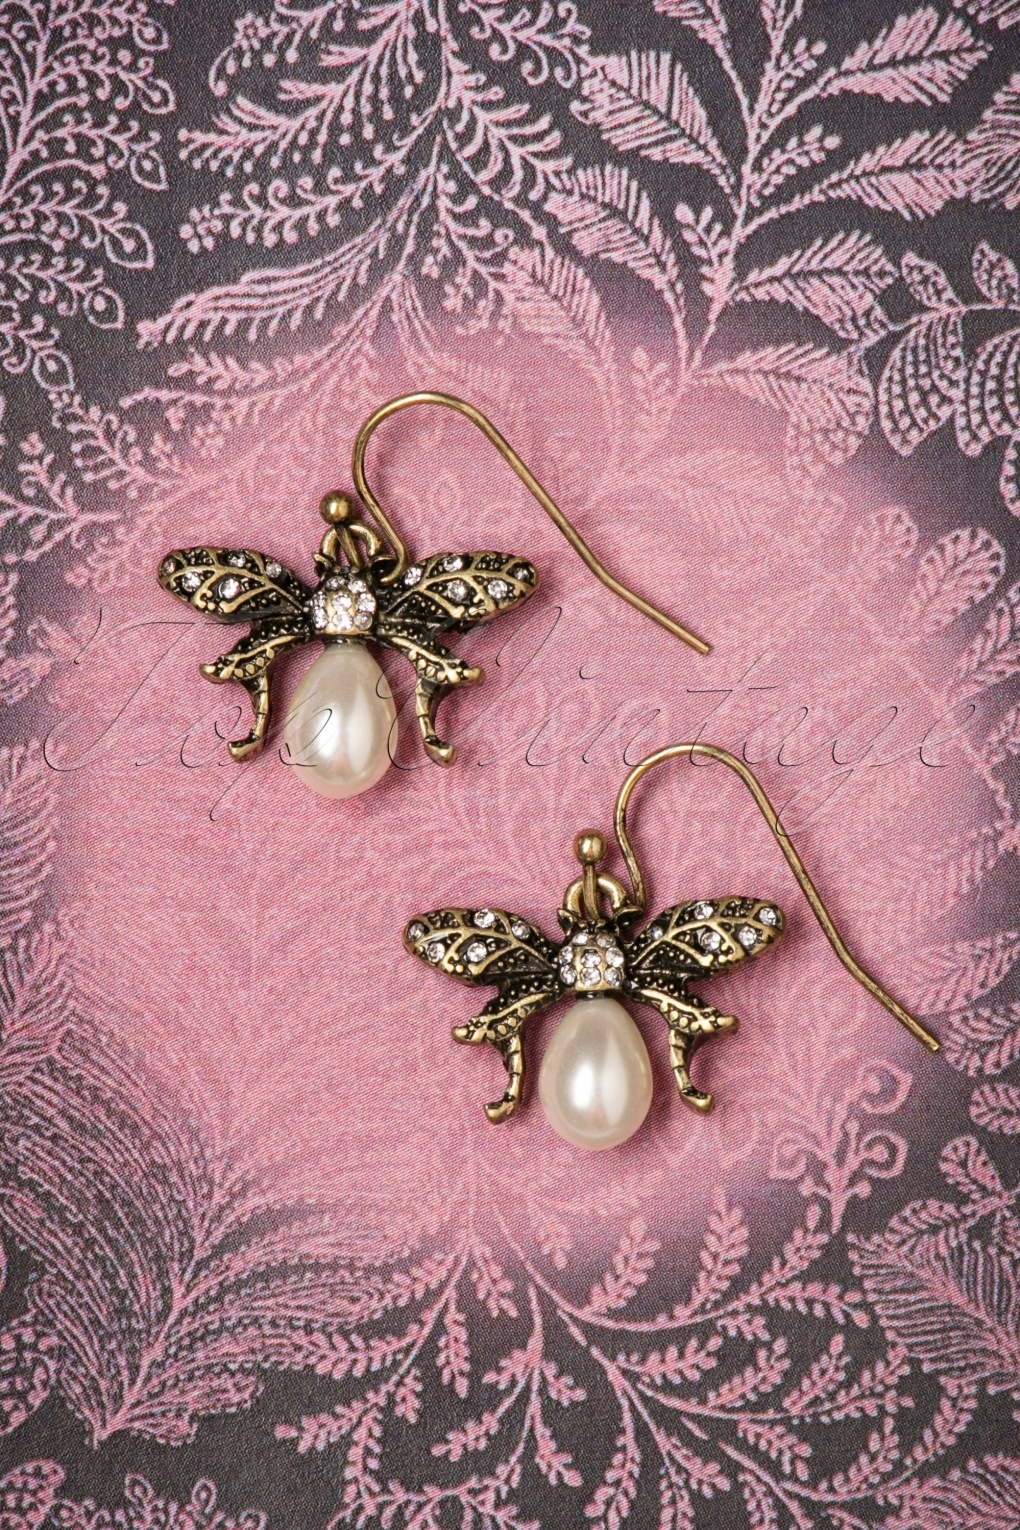 1930s Jewelry | Art Deco Style Jewelry 30s Bumble Bee Pearl Drop Earrings in Gold £17.53 AT vintagedancer.com